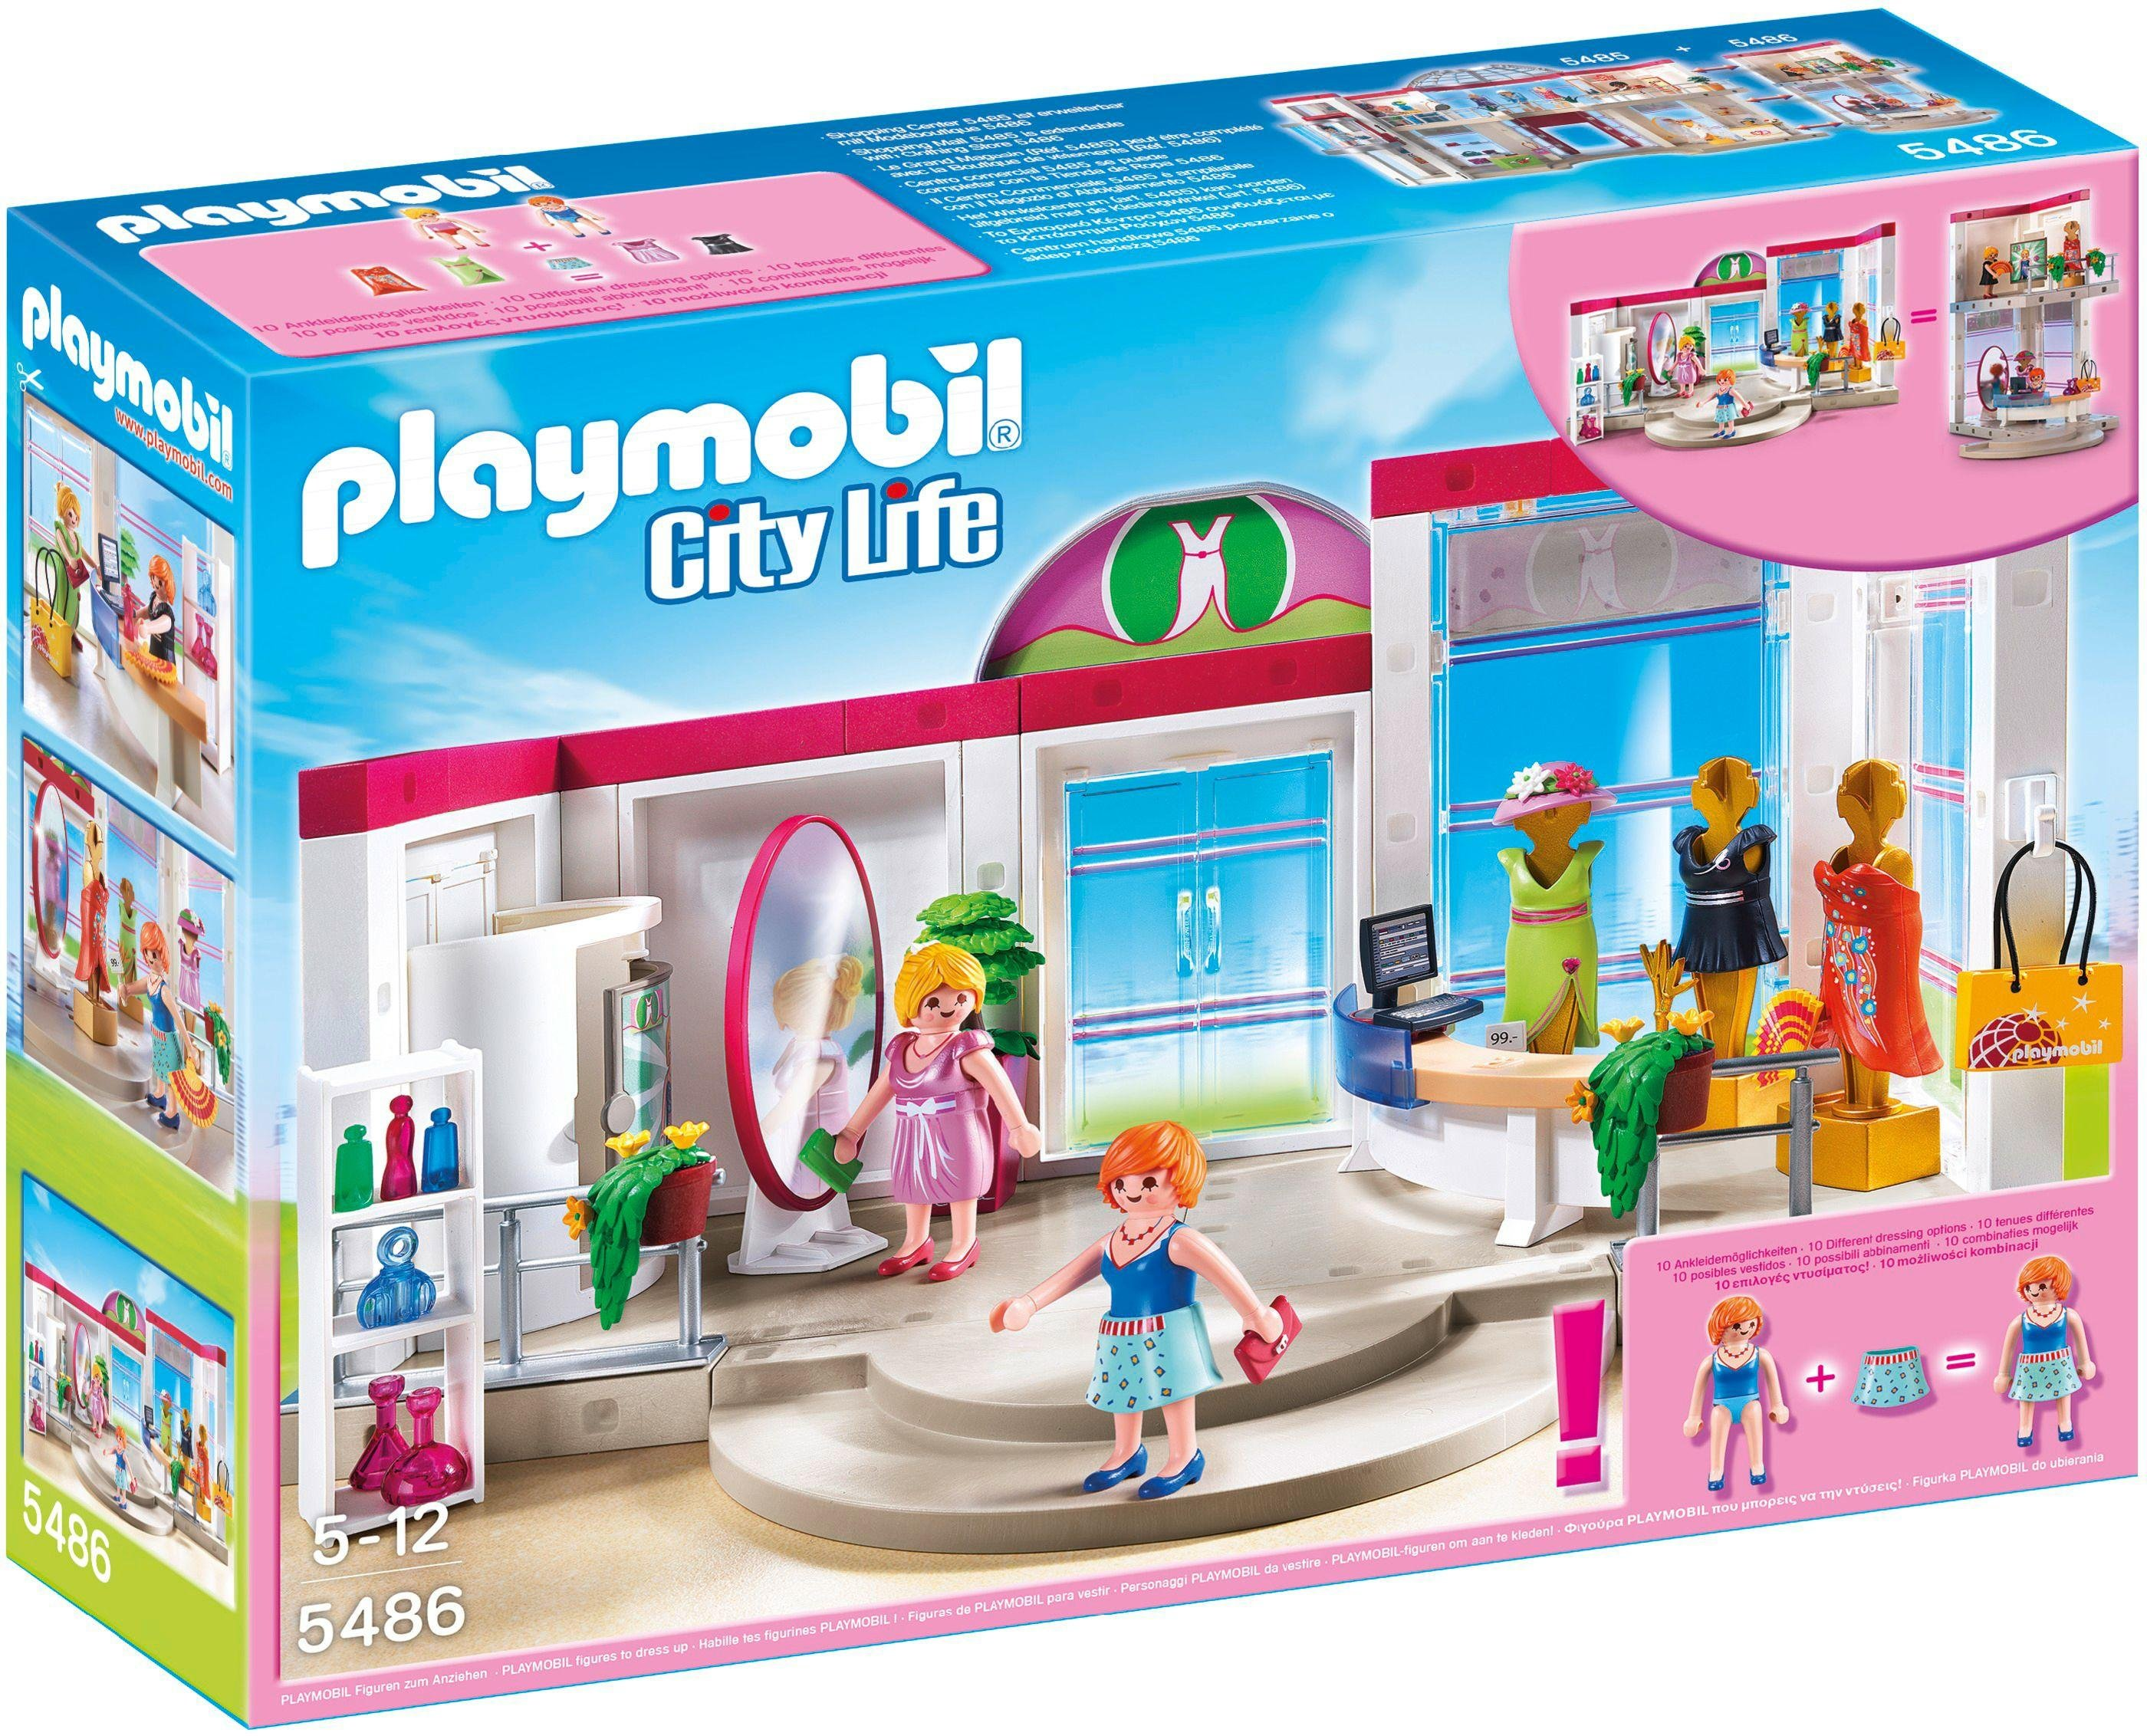 Image of Playmobil 5486 City Life Clothing Boutique.